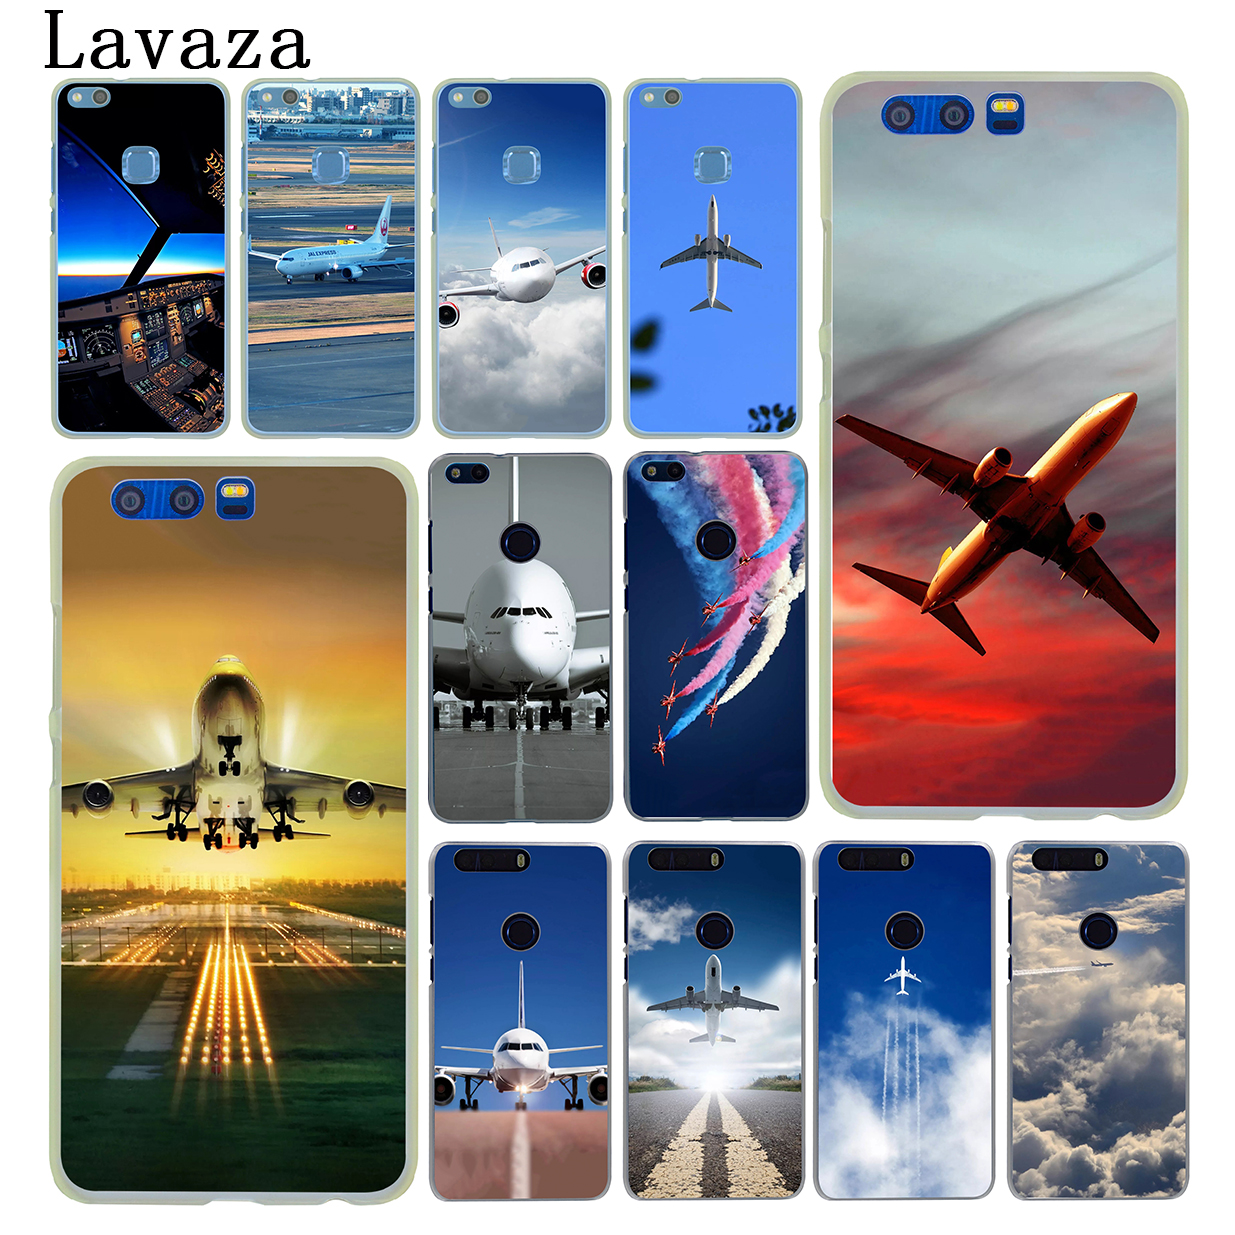 Lavaza Aircraft Airplane fly travel cloud Sky Case for Huawei Y6 Y3 Y5 II Y7 2017 Nova 2 Plus 2S 2i Honor 9 8 Lite 7 6 6A 7X 6X